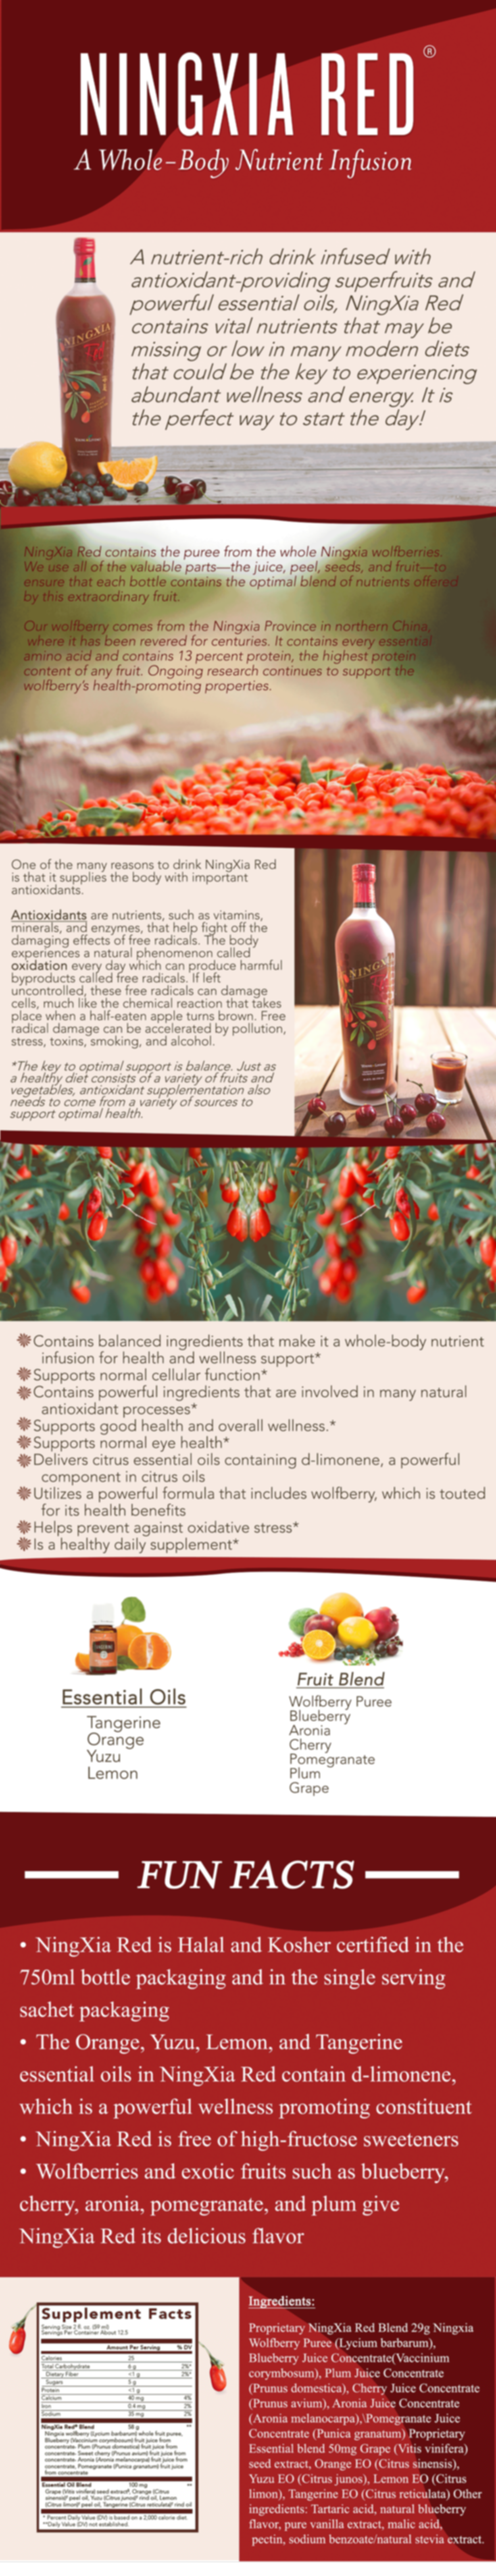 ningxia-red-page.png